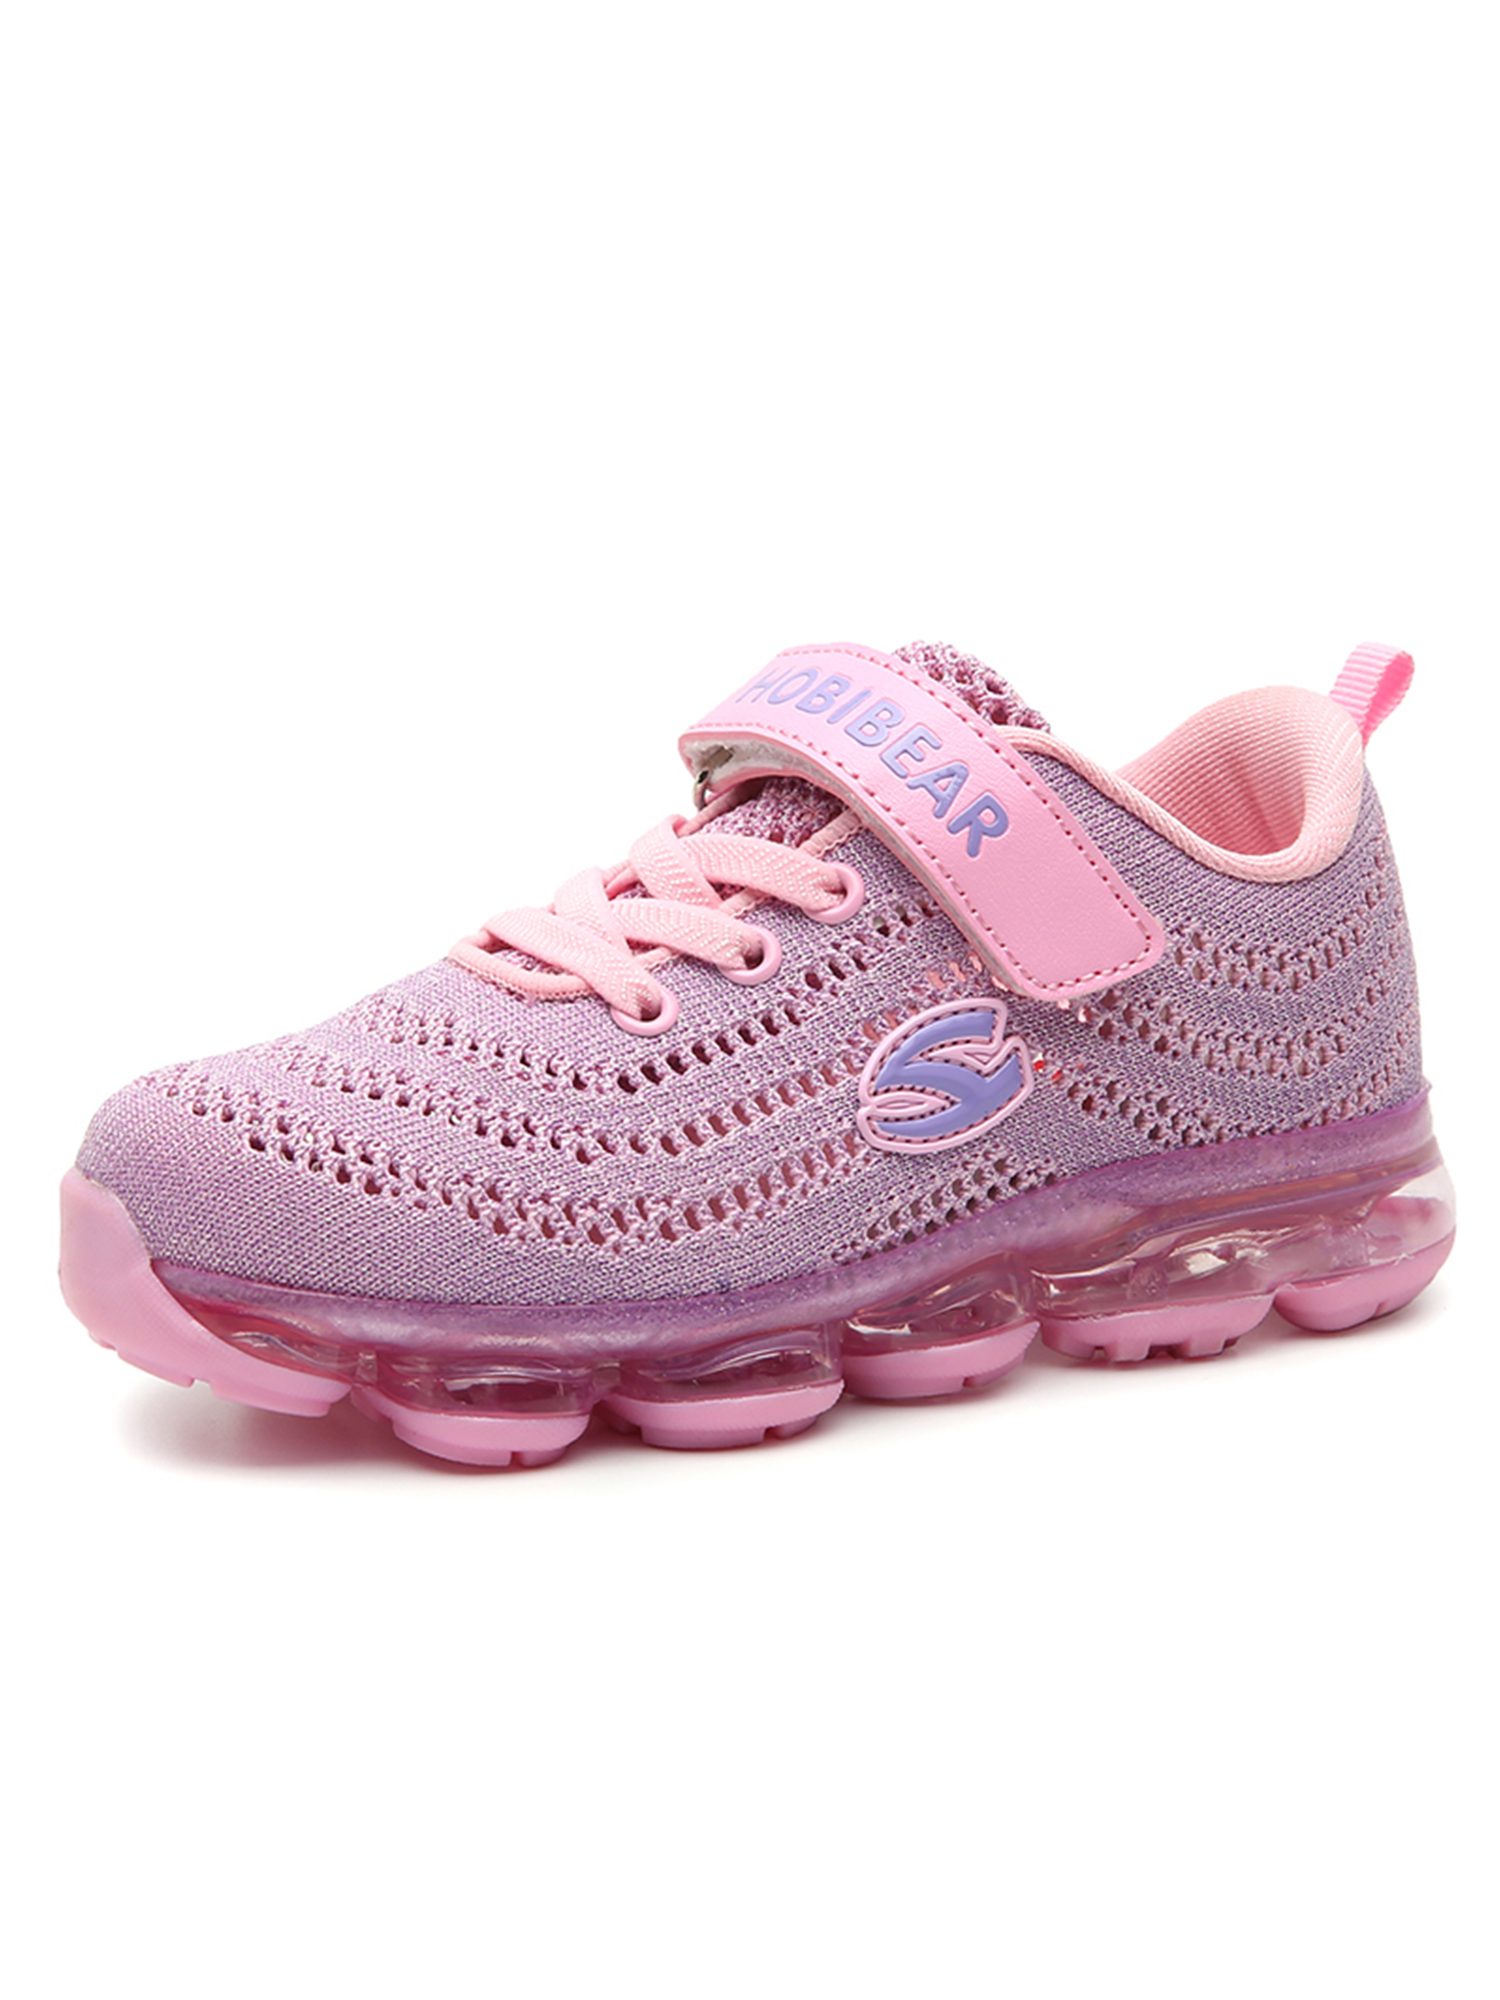 Big Kid's Running Shoes Air Cushion Shock Absorption Breathable Anti-Skid Sneakers Unisex